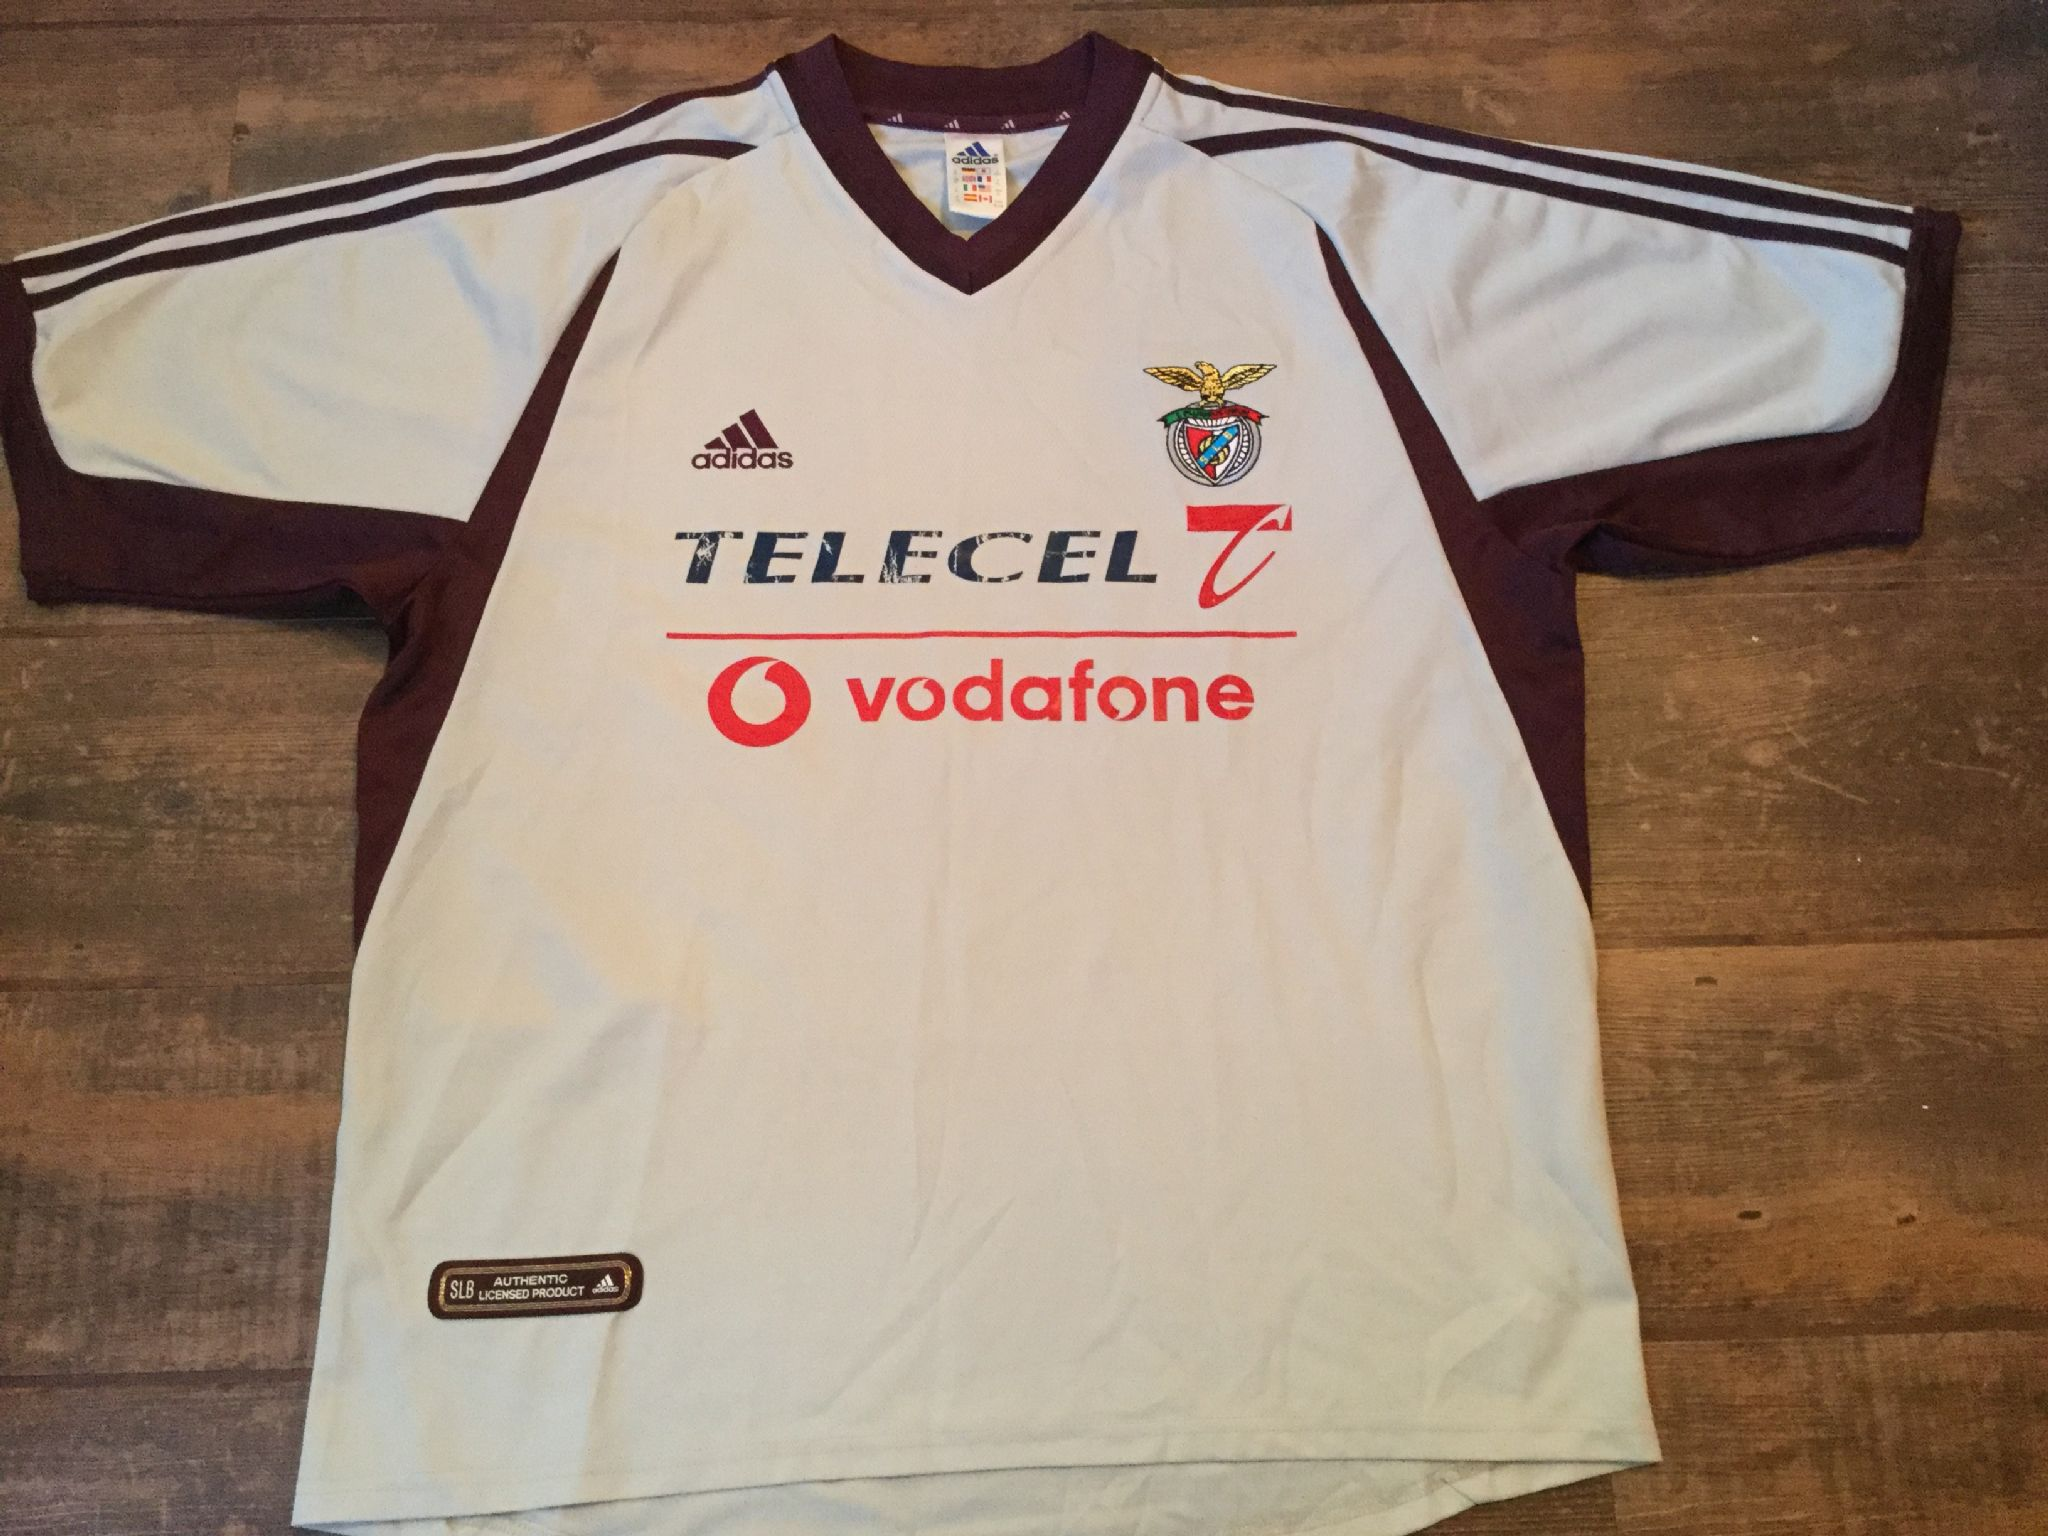 check out 64704 73b6b Global Classic Football Shirts   2001 Benfica Vintage Old ...